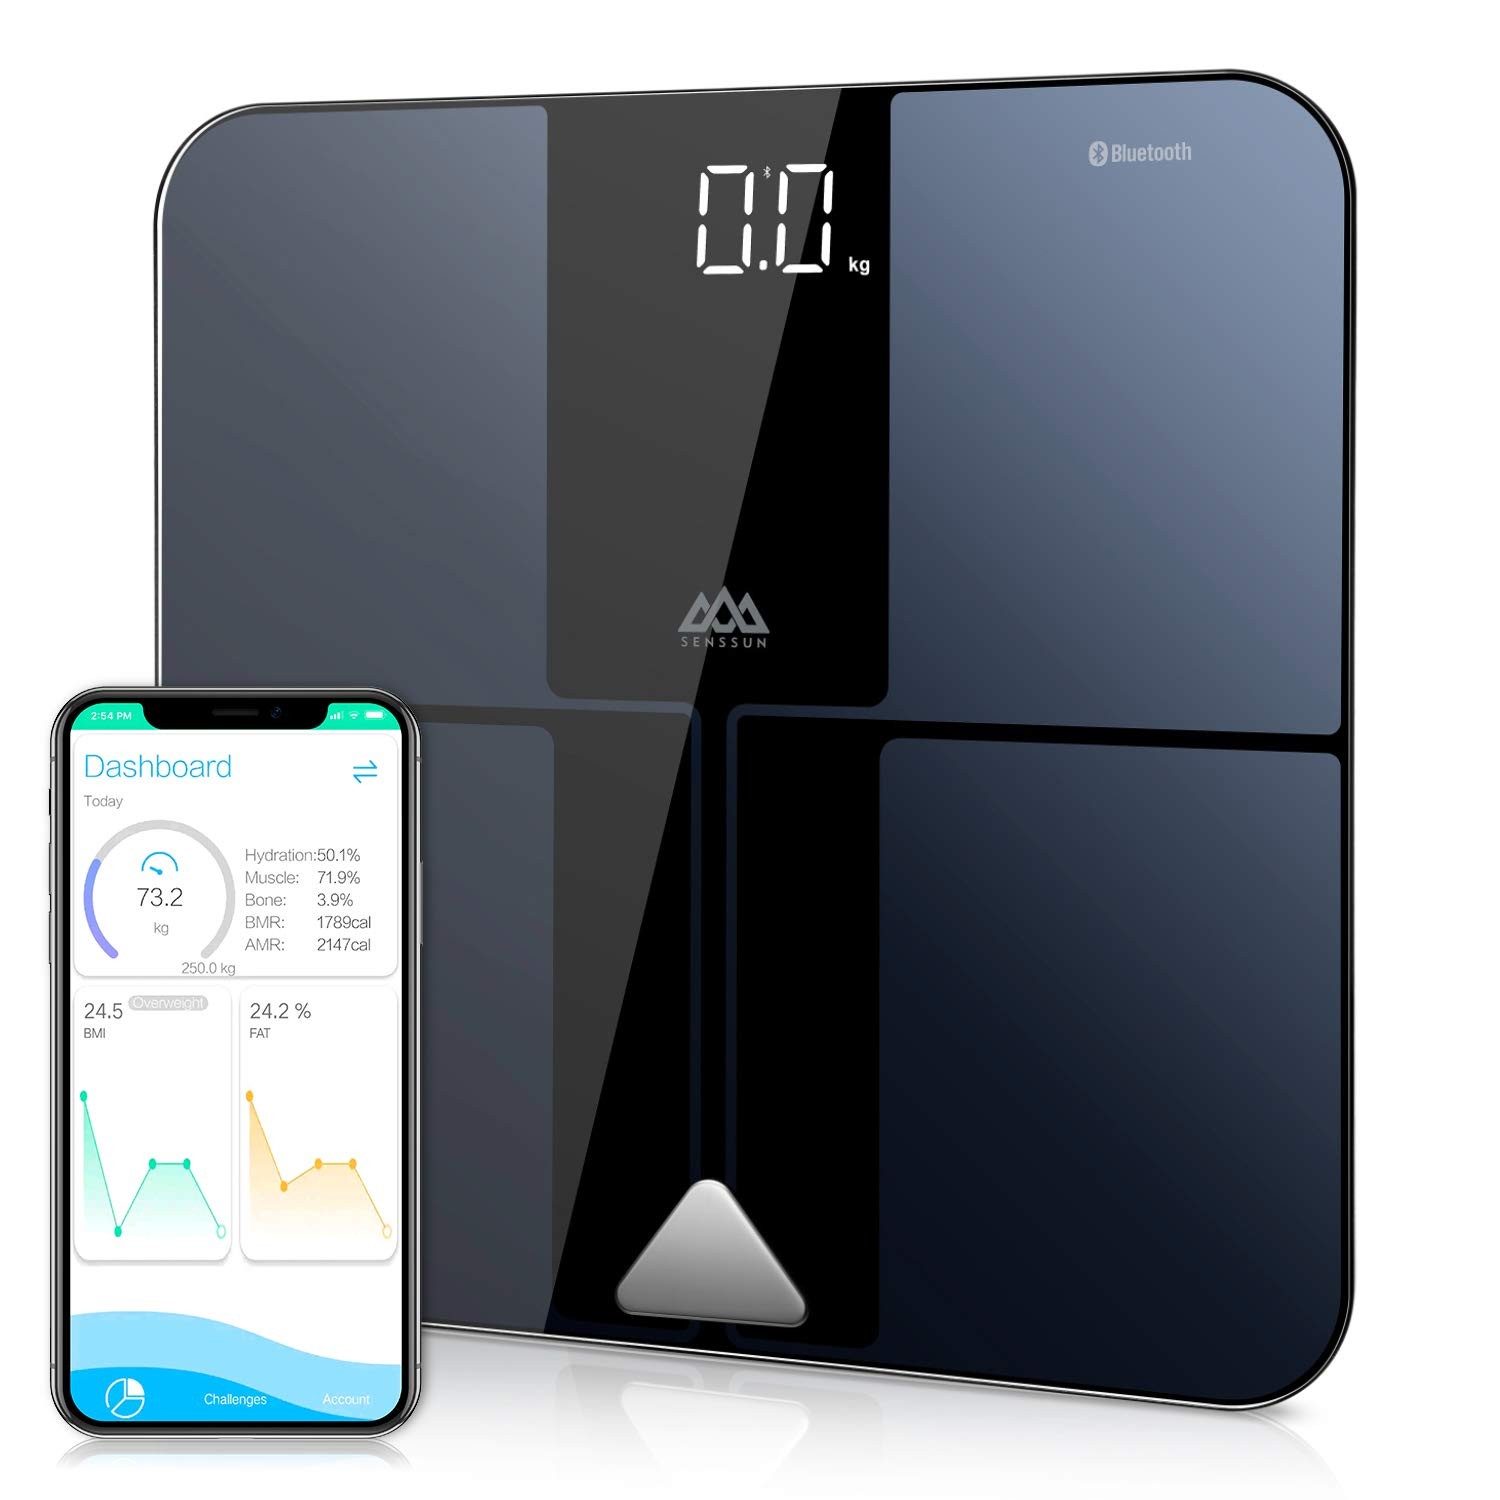 SENSSUN Bluetooth Body Fat BMI Scale, High Precision ITO Coating Bathroom Weight Scale with Smartphone App, Sync with Fitbit, Apple Health and Google Fit,396 lbs, FDA Approved by SENSSUN